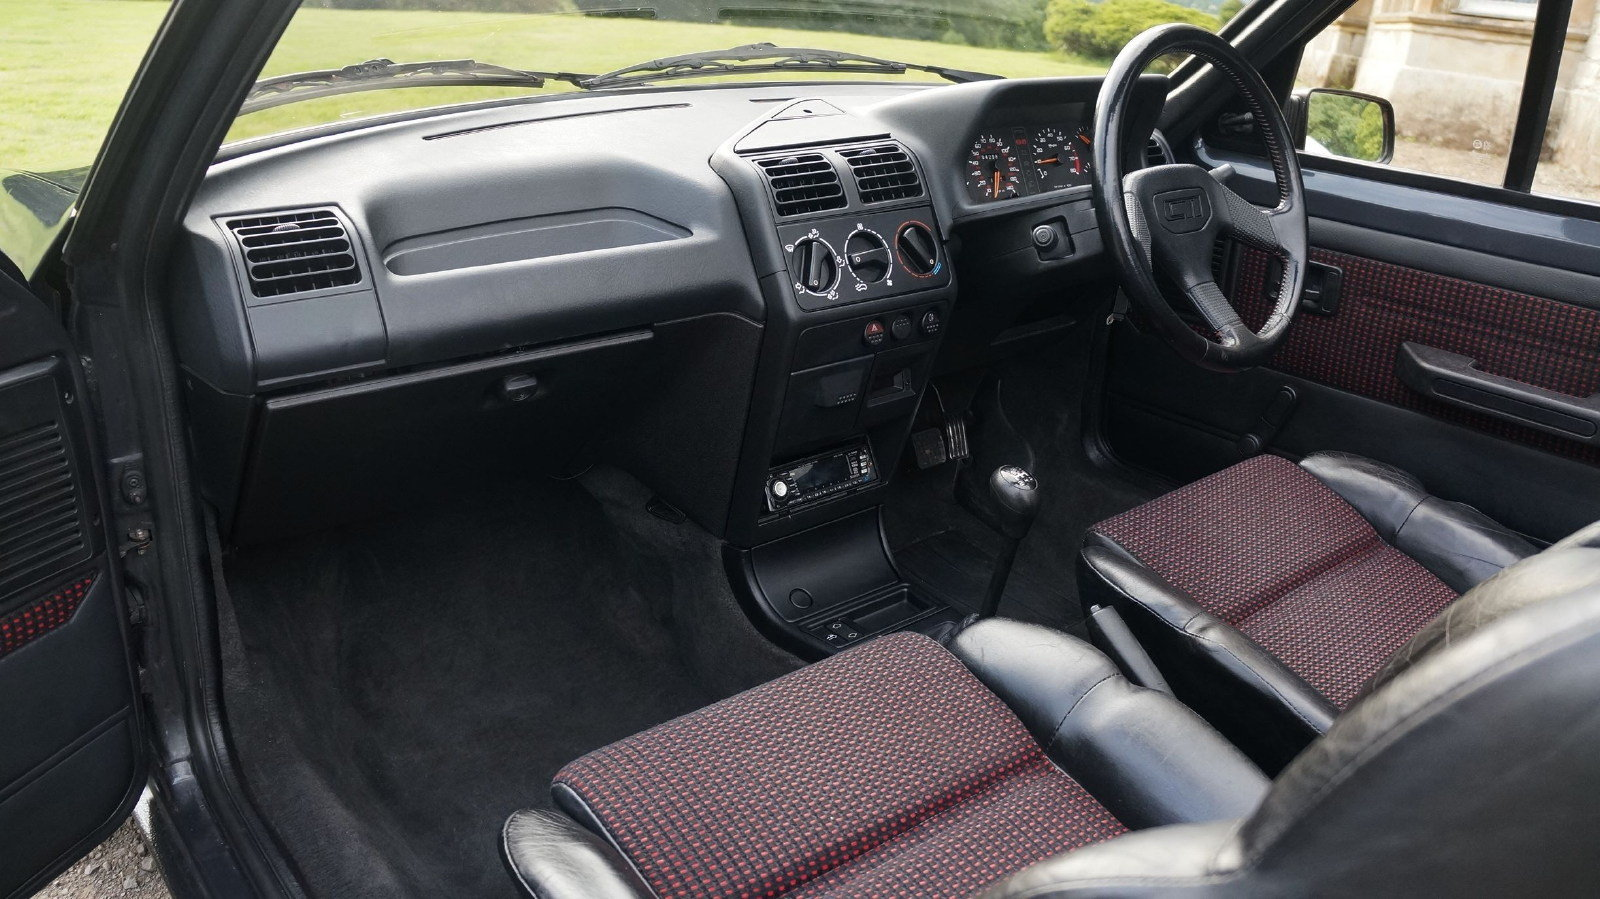 1993 Peugeot 205 CTi 1.9 GTI Convertible Cabriolet For Sale (picture 5 of 6)